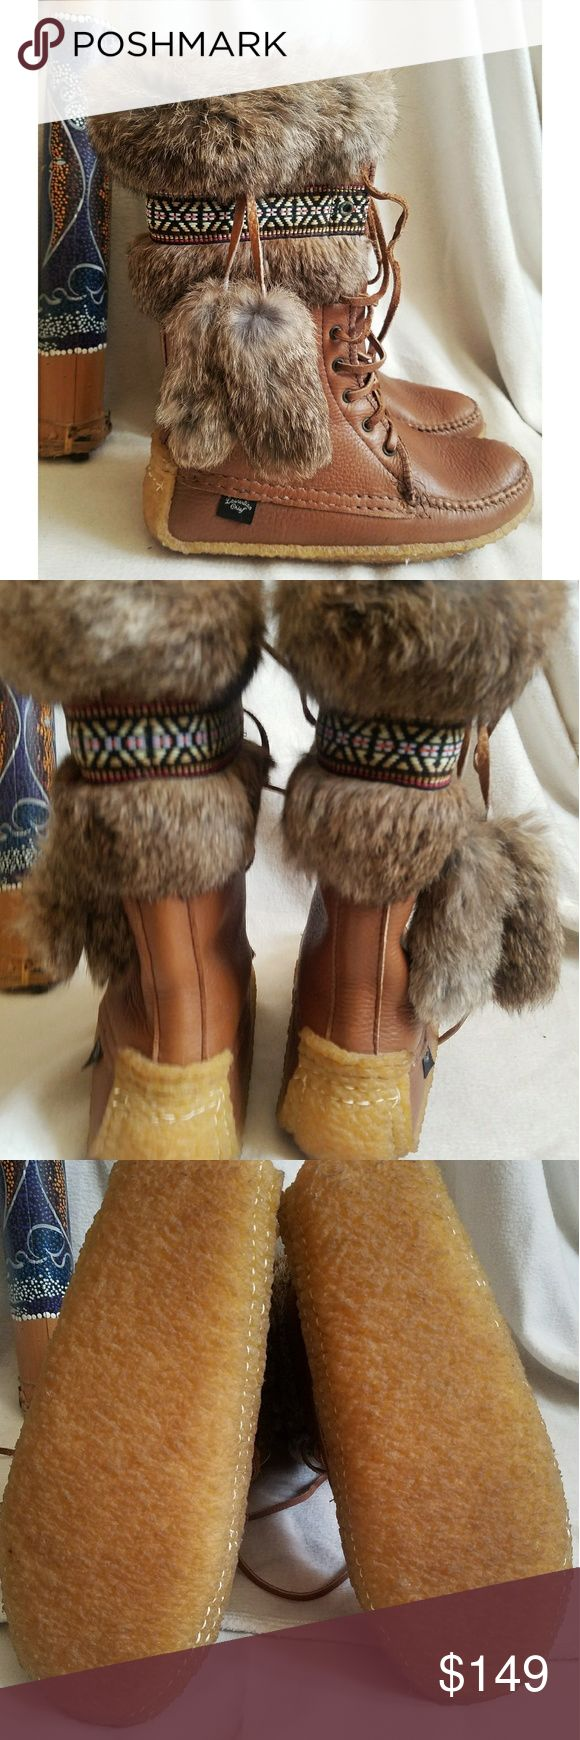 Laurentian Chief handmade boots Laurentian Chief ladies boots, hand made in Canada by Native Americans, leather with Rabbit Fur, two large rabbit poms per boot, lined in the finest white shearling wool, plantation gum sole, leather laces, beautiful braided detail breaks up the rabbit fur. These boots are in good to excellent condition.May have a few faint spots on leather in places, and faint marks to side of soles.Ladies size 8. *My items are NOT from a smoke free home* Laurentian Chief…